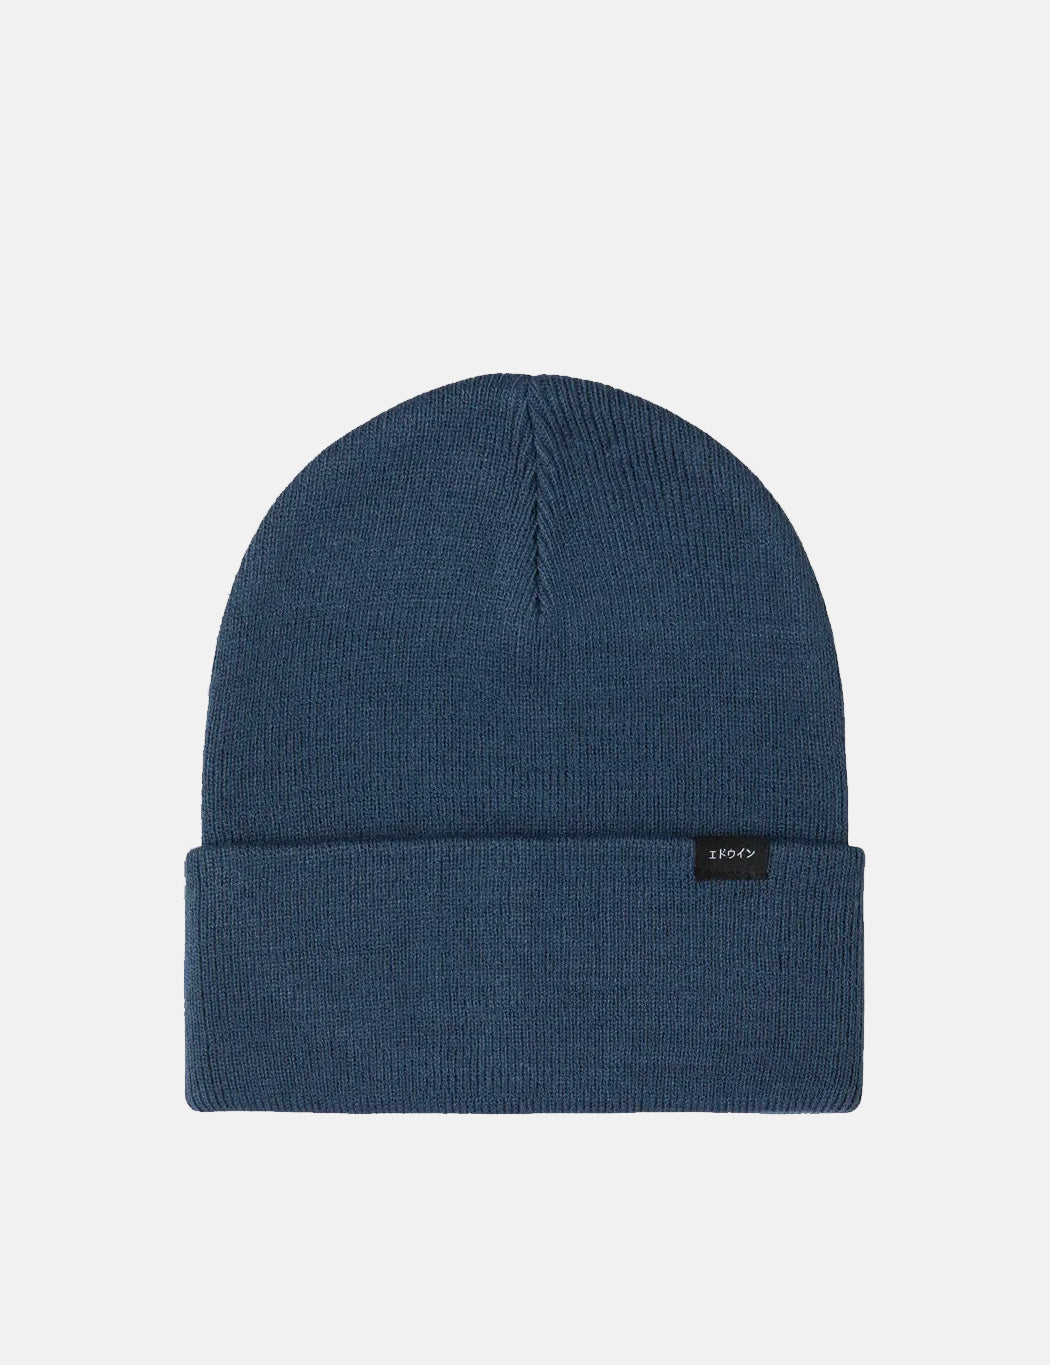 Edwin Kurt Beanie Hat - Legion Blue | URBAN EXCESS.